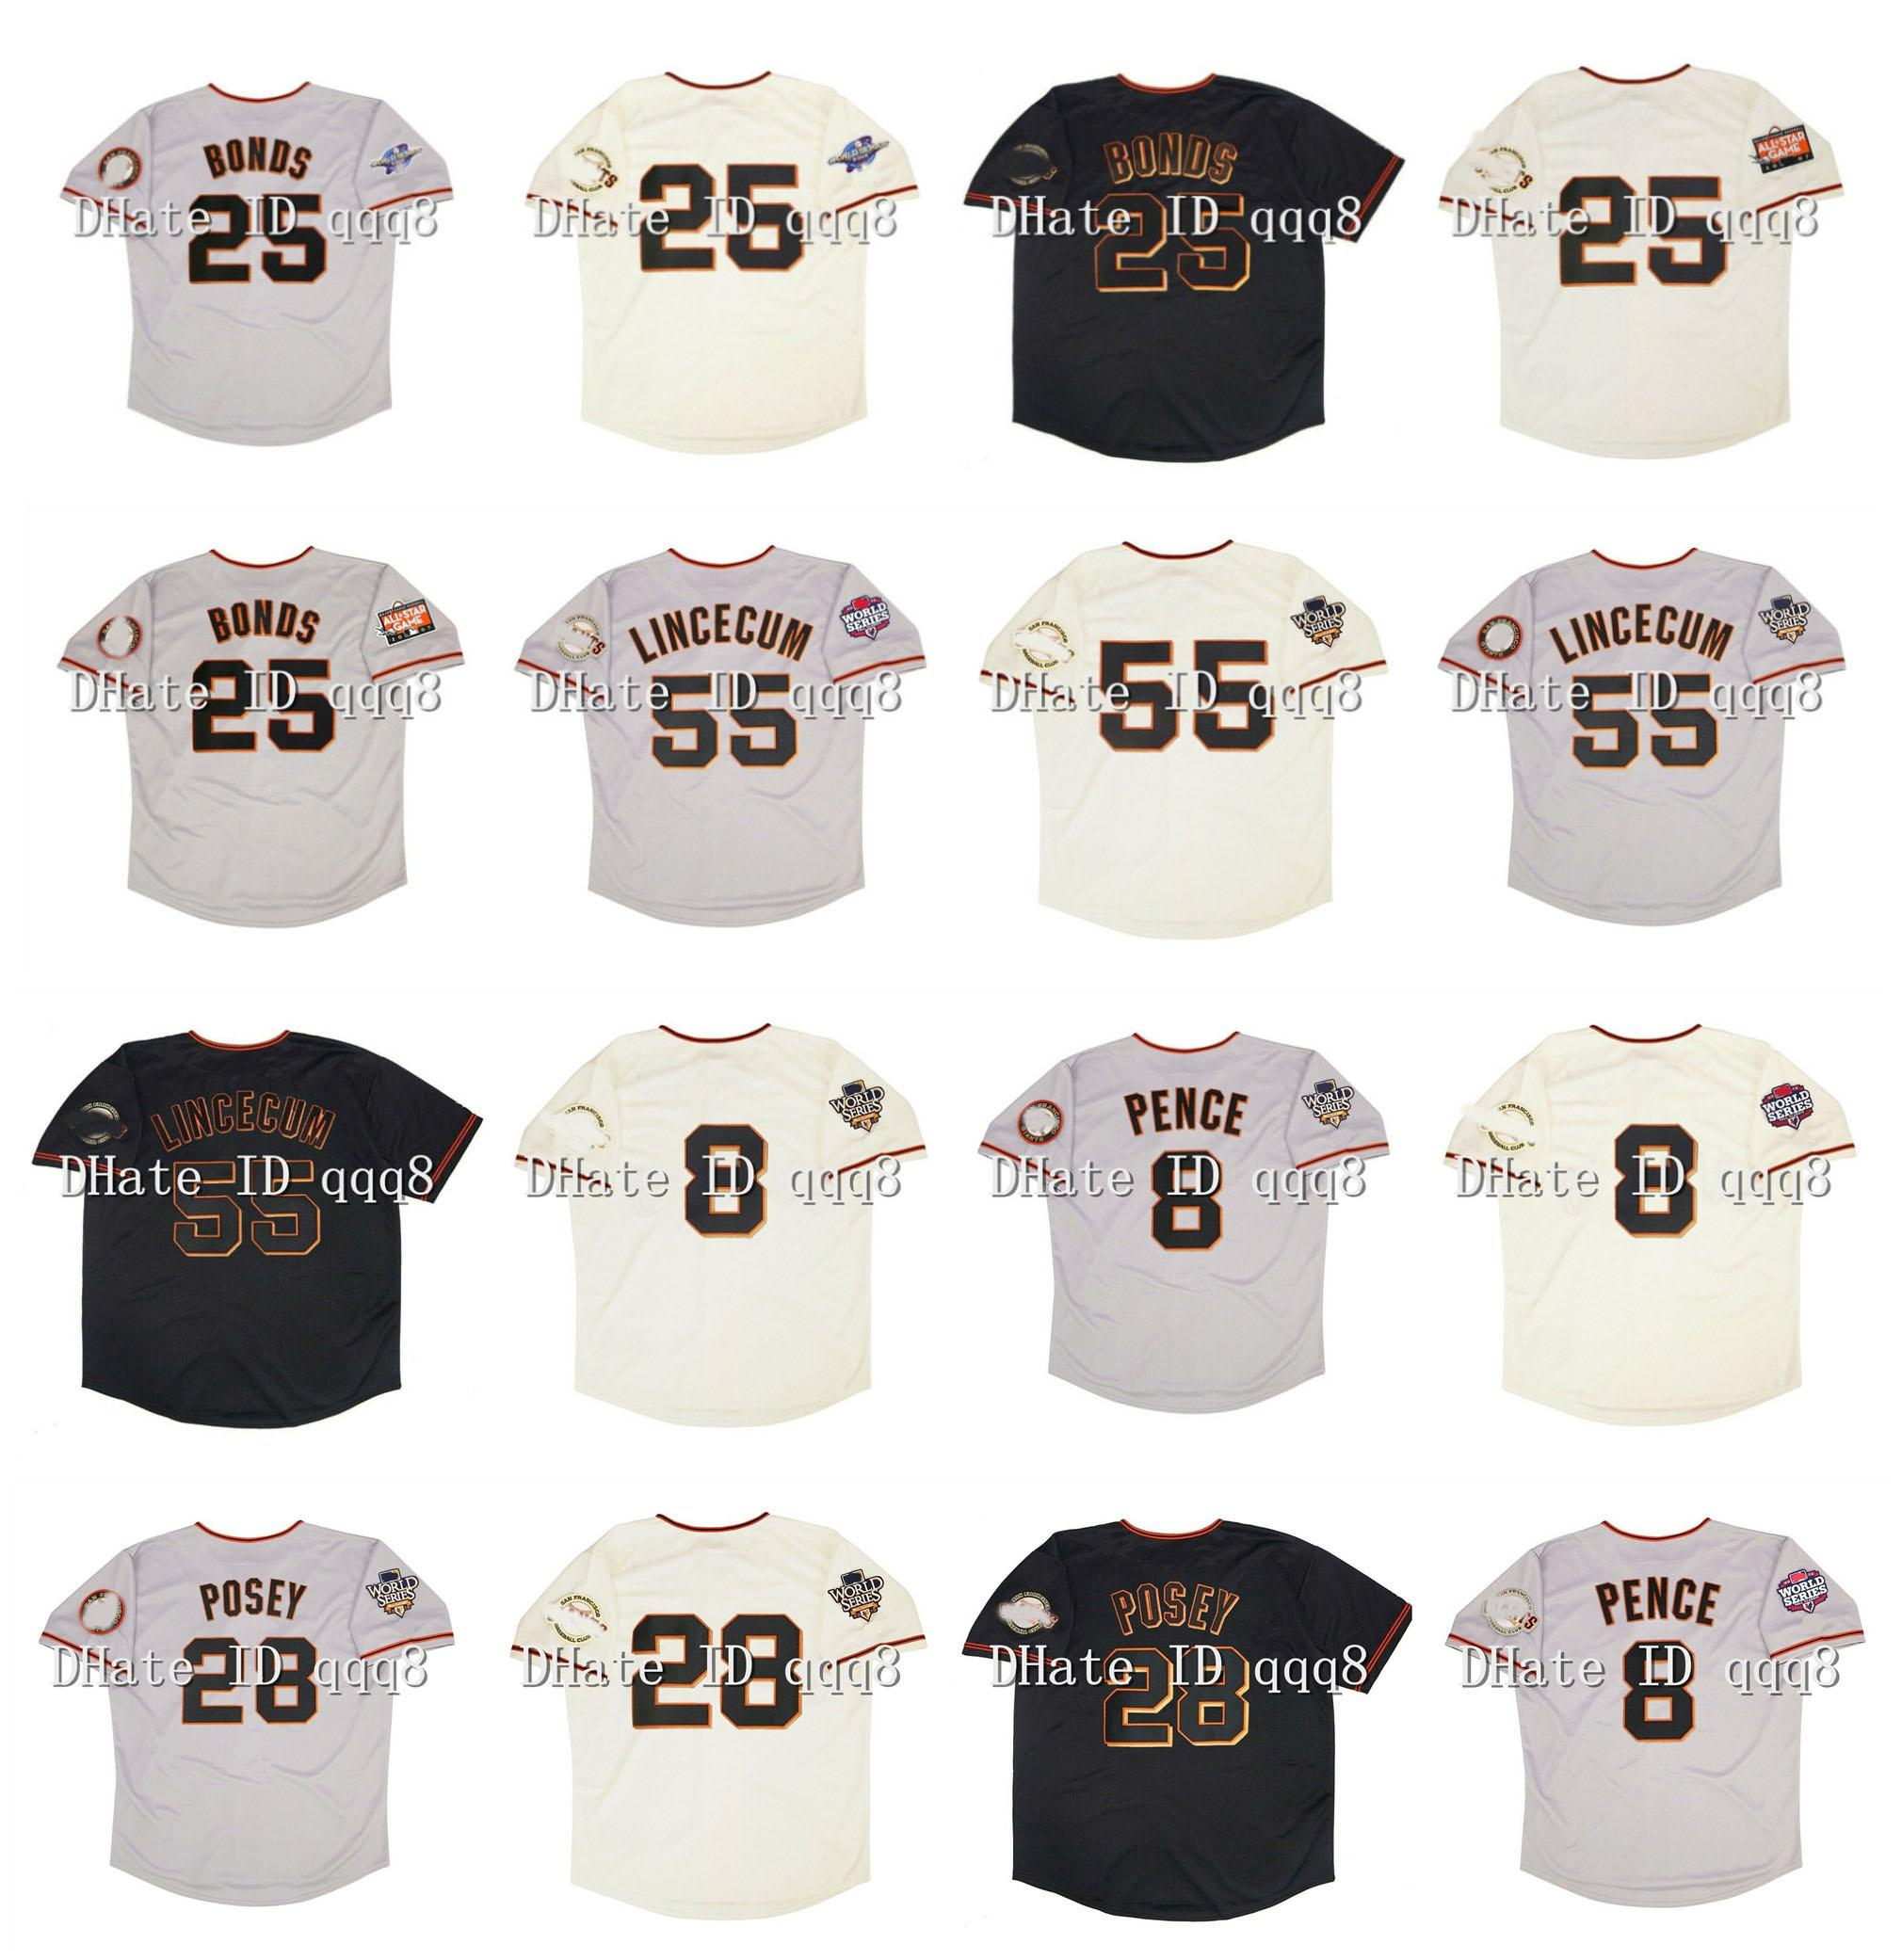 2002 Retro 25 Barry Bonds Jersey 55 Tim Lincecum 8 Hunter Pence 28 Buster Posey 2010 2012 WS Patch 2007 All Star Vintage Baseball Camisas